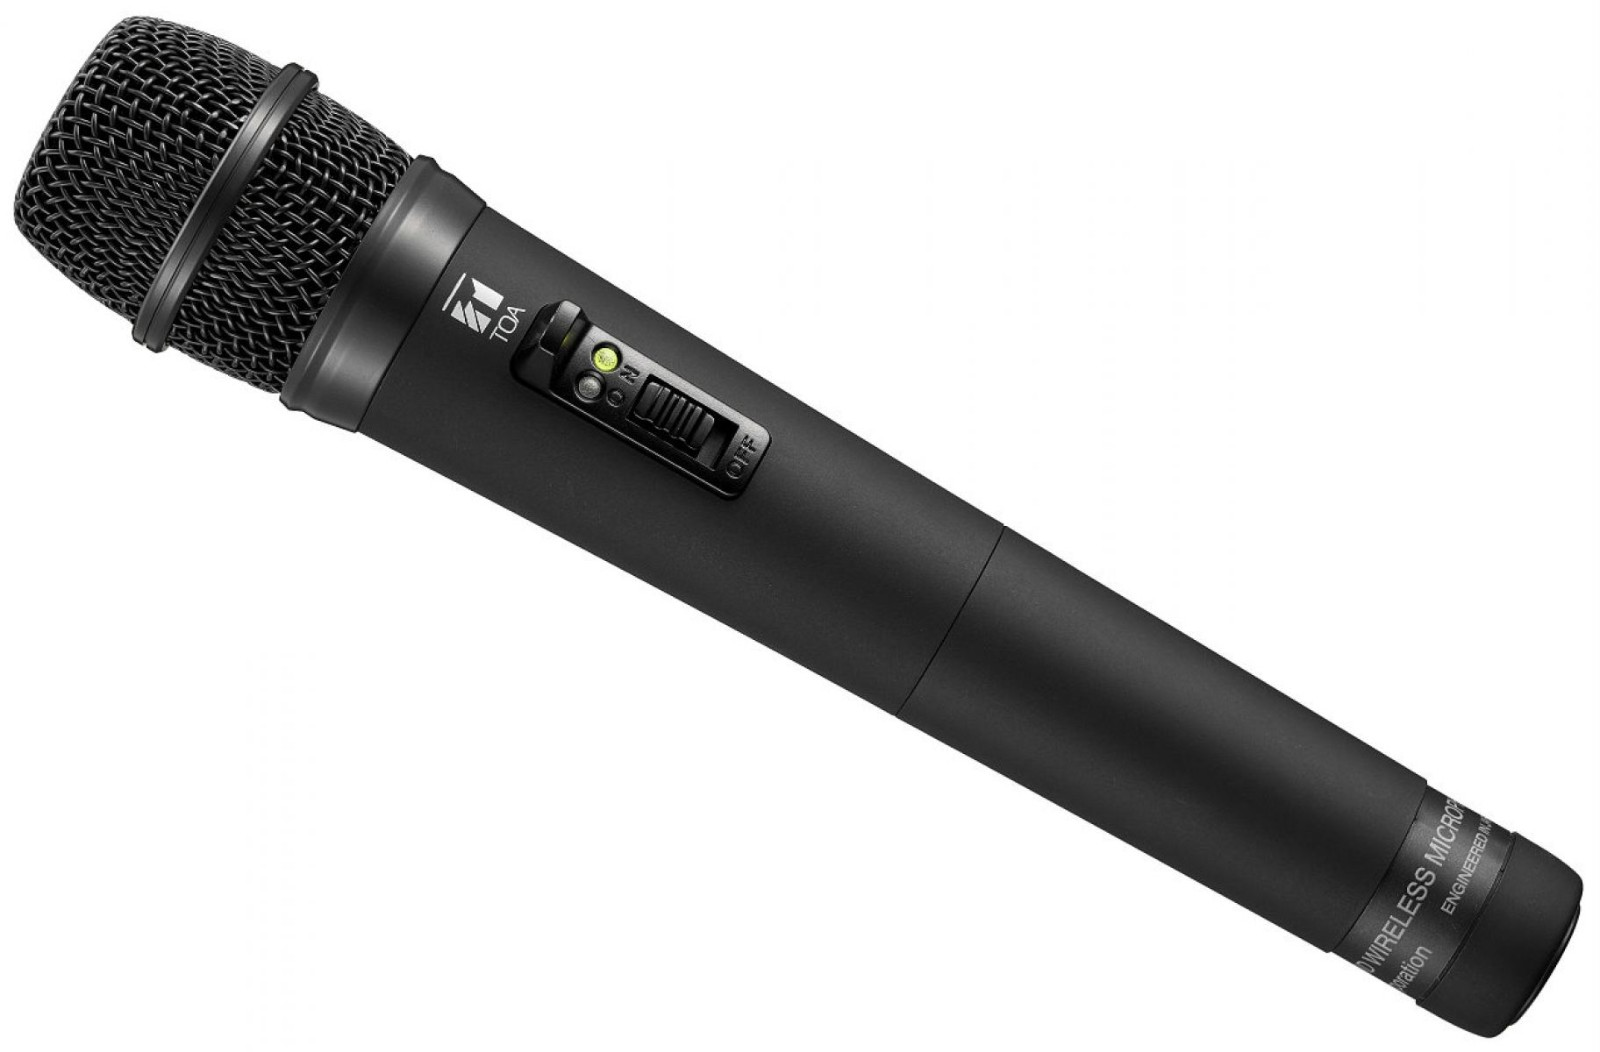 WM-5225.Wireless Microphone(Handheld)